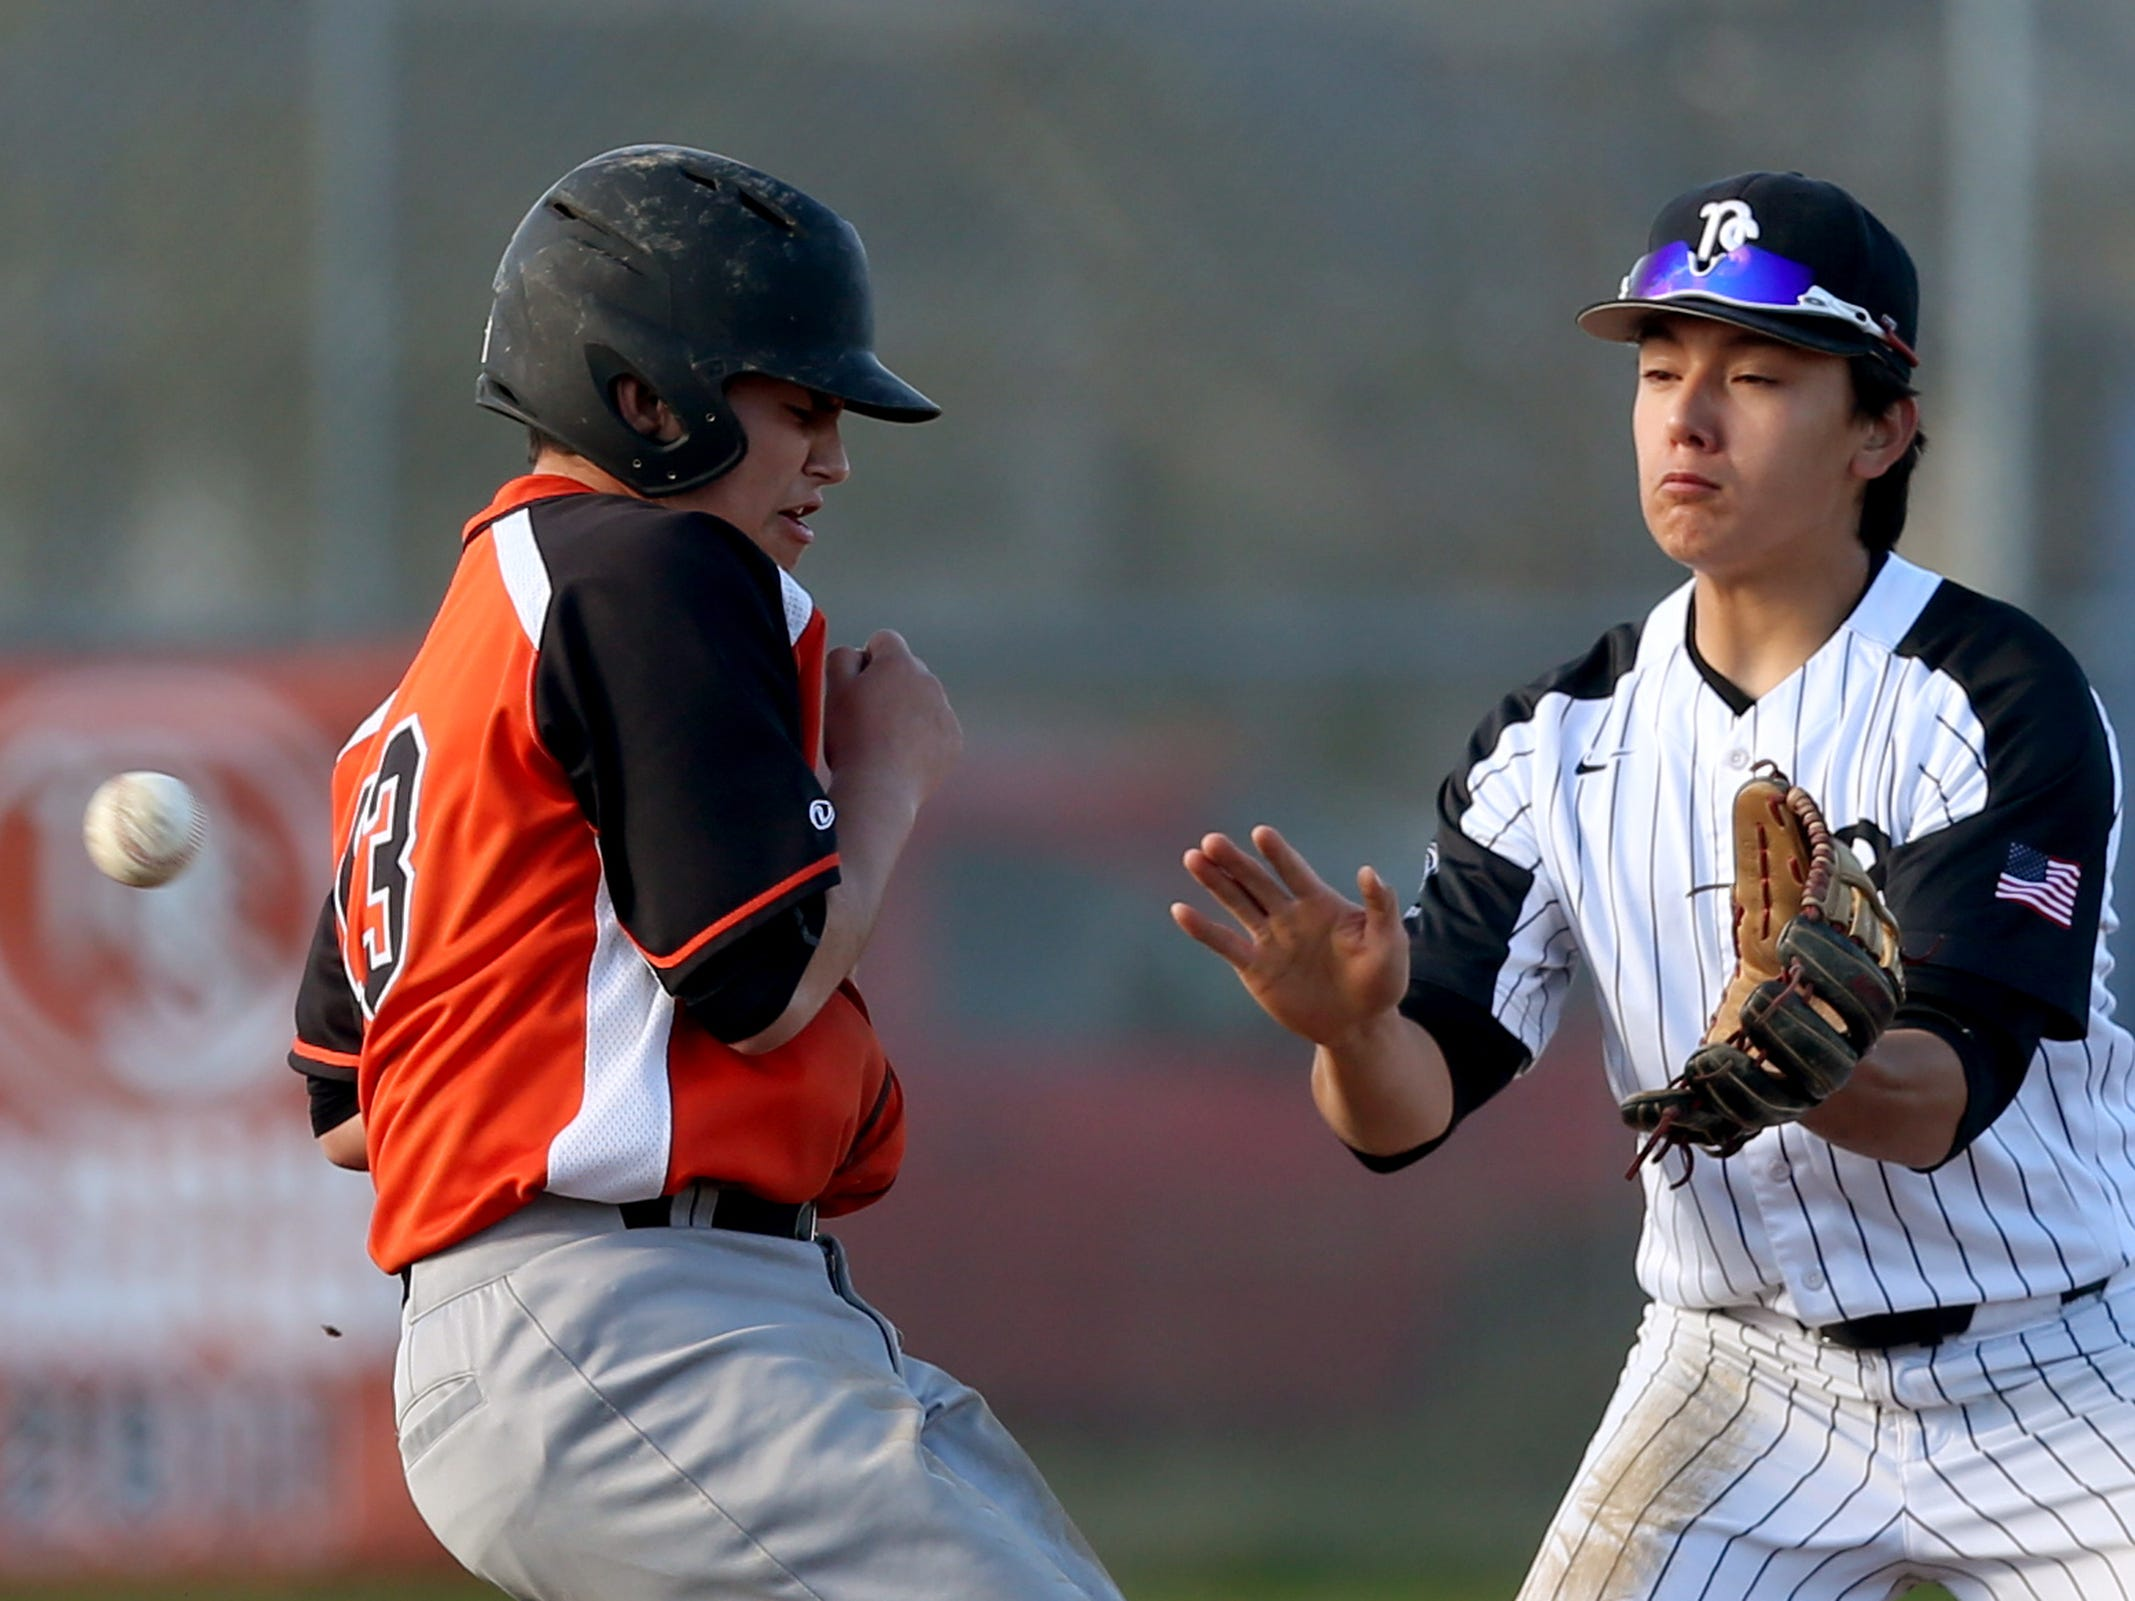 North Salem's William Tsukamaki (8) tries to make a catch to get a Dallas player out at second in the Dallas vs. North Salem baseball game in Salem on April 12, 2019.